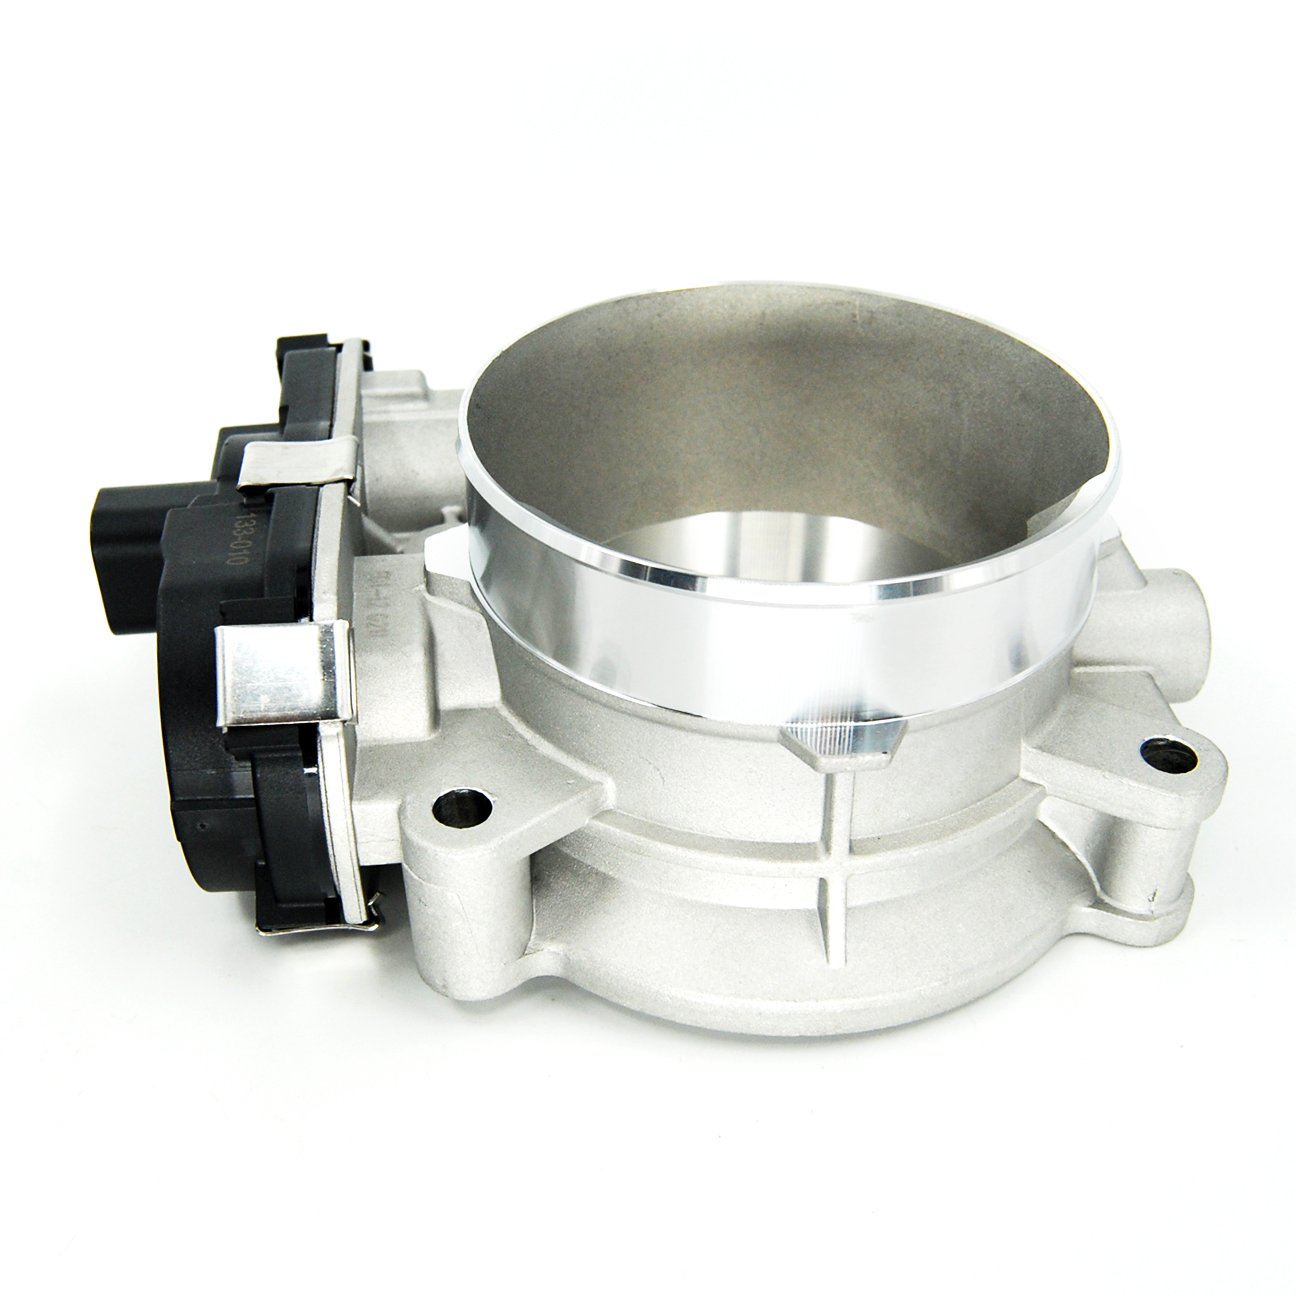 SKP SKS20008 Throttle Body, 1 Pack